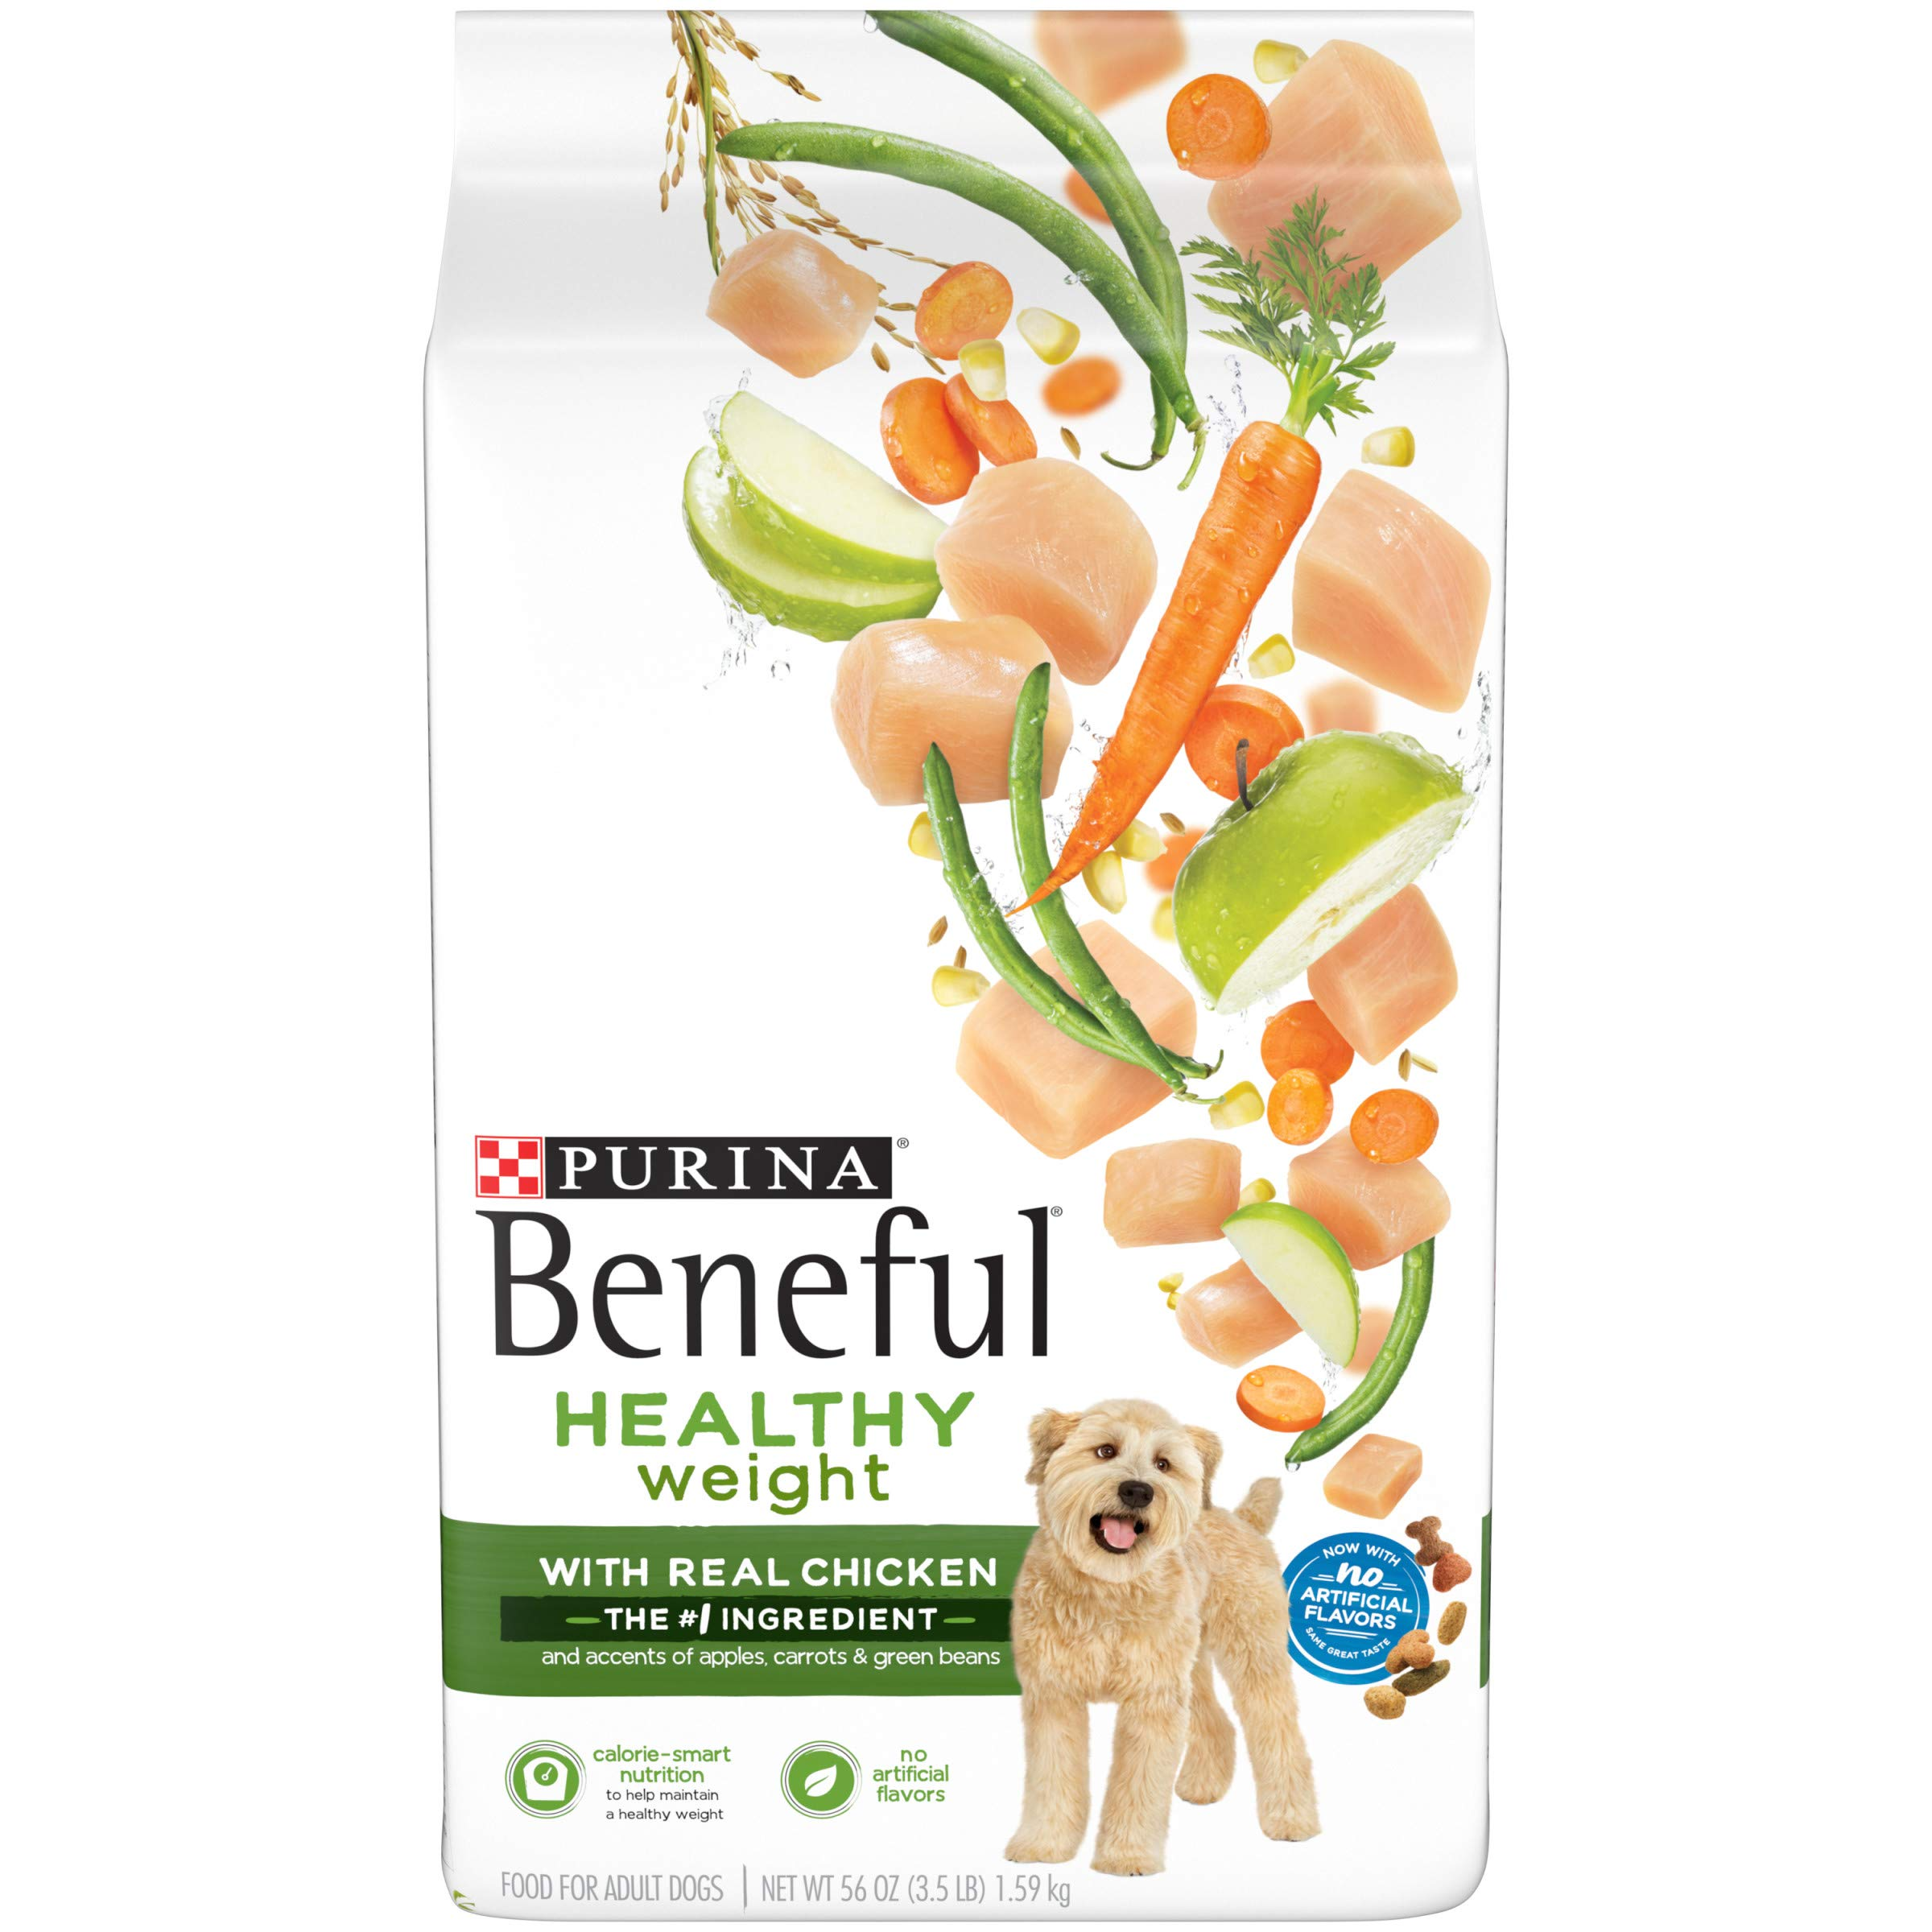 Purina Beneful Healthy Weight Dry Dog Food, Healthy Weight With Real Chicken - 3.5 lb. Bag by Purina Beneful